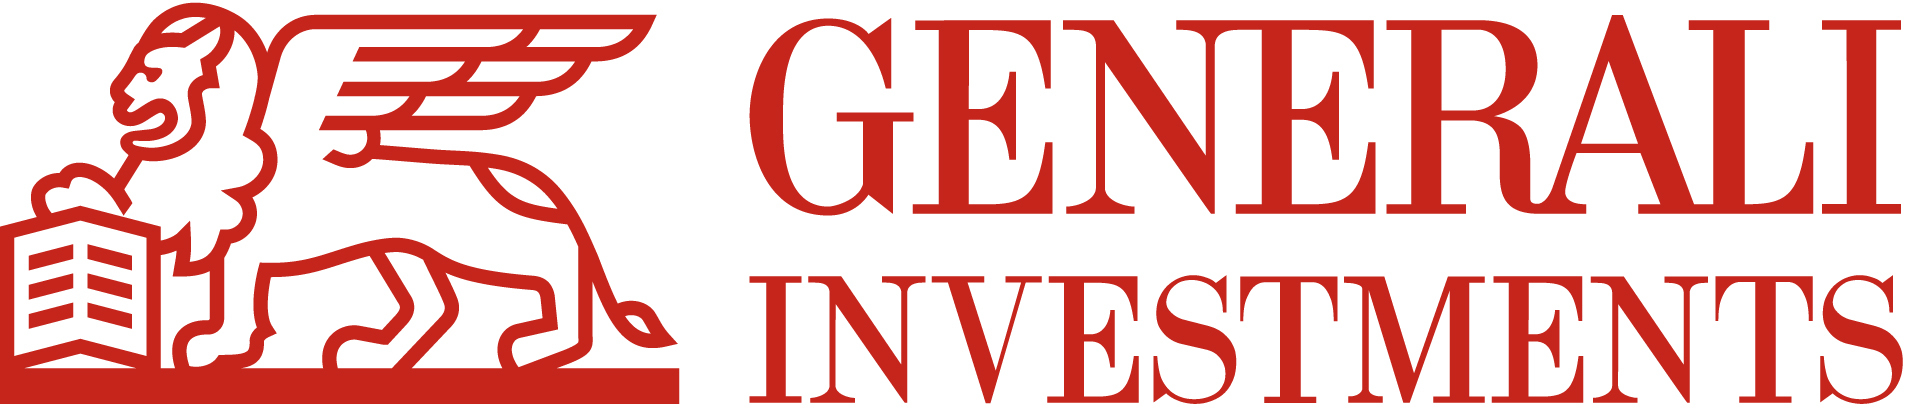 Generali Investments Partners